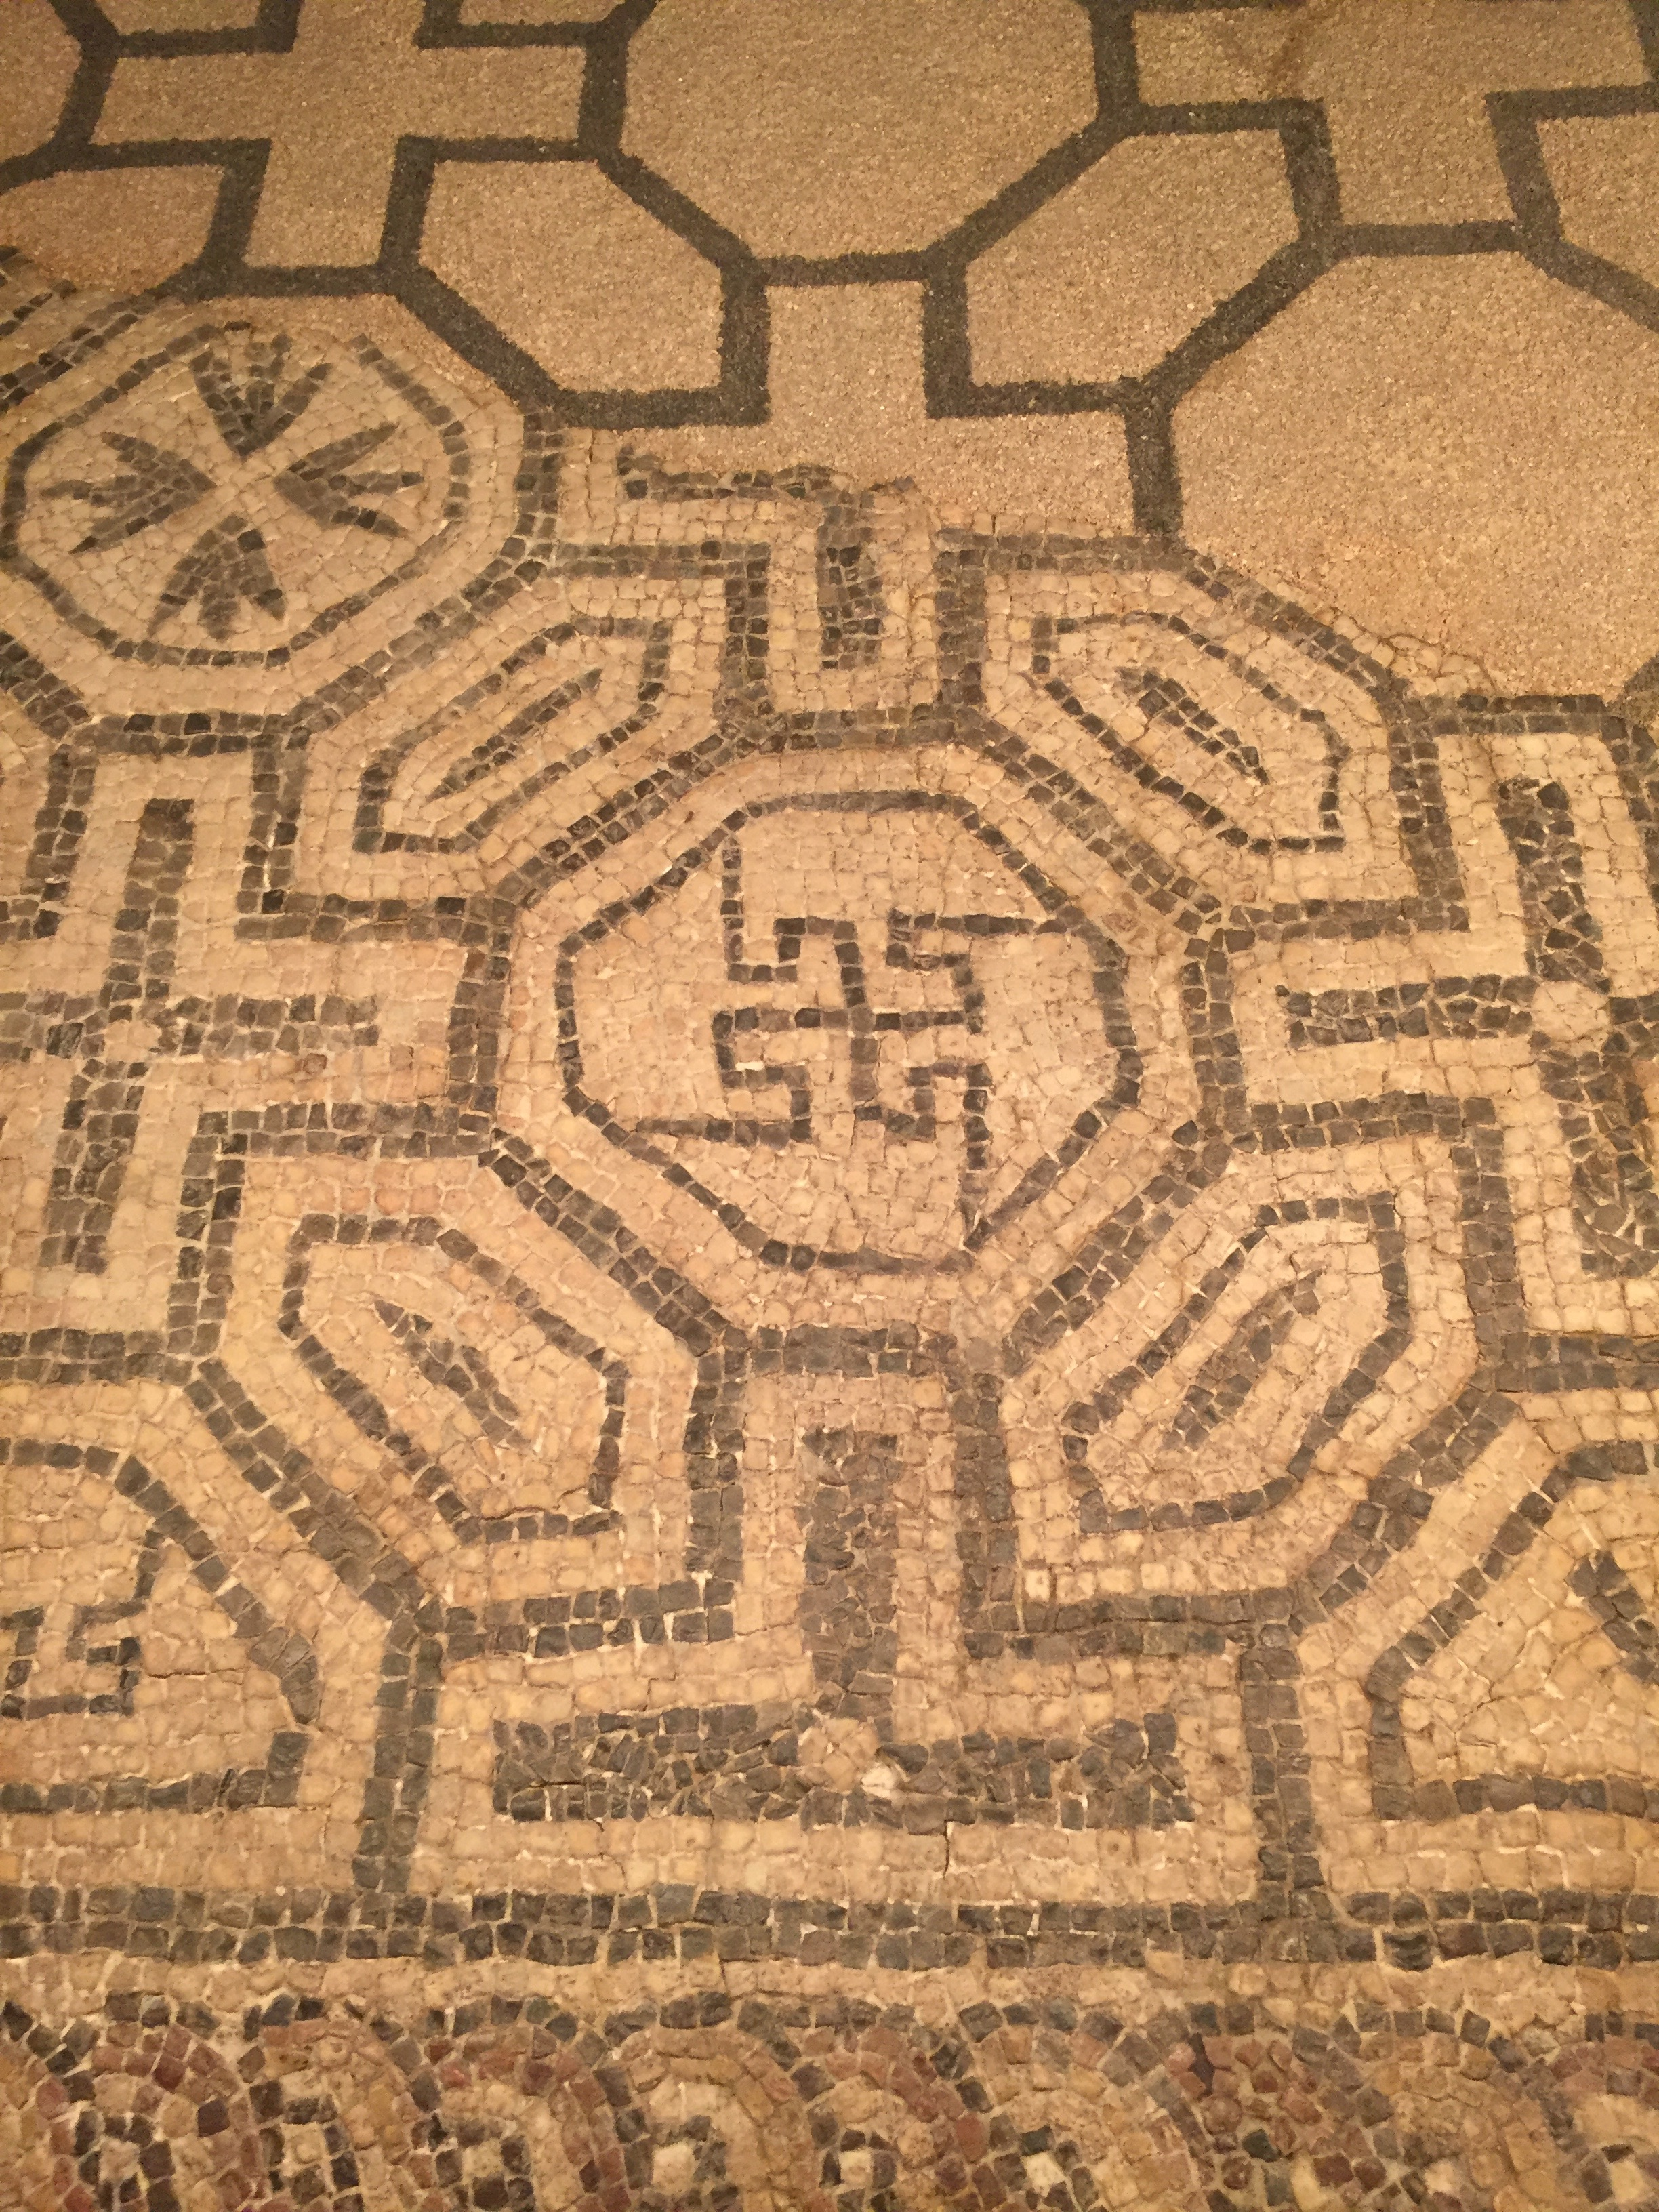 #01. The swastika is an ancient symbol, thought by many ancient cultures to represent the sun. This design is found on a Roman mosaic at Barcino ( Barcelona)